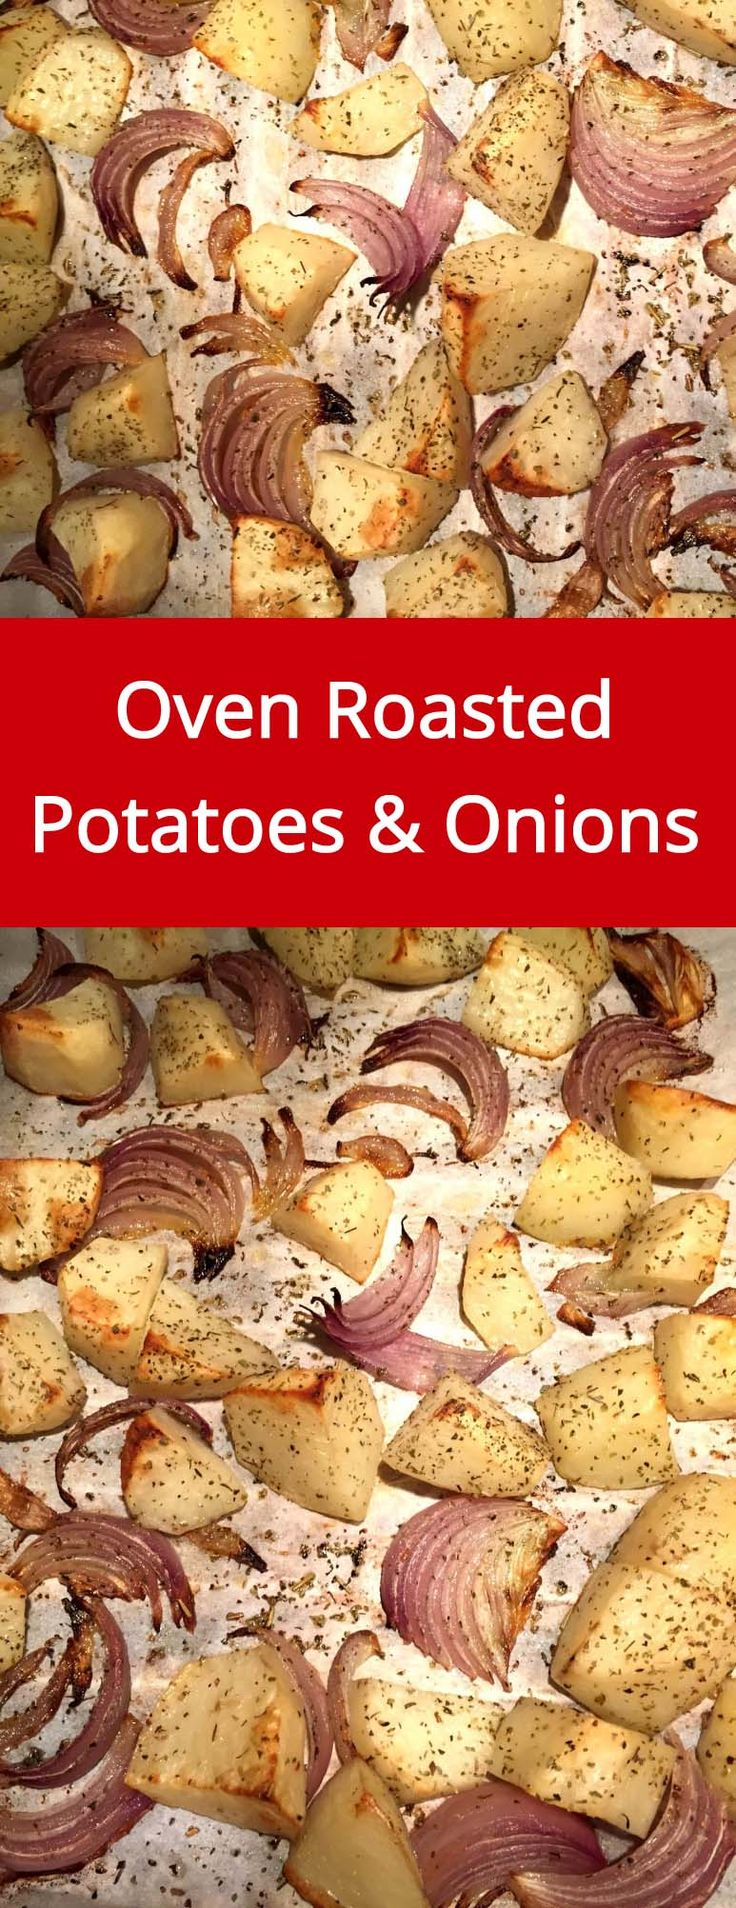 Oven Roasted Potatoes And Onions Recipe - super easy and yummy, the oven does all the work!   MelanieCooks.com